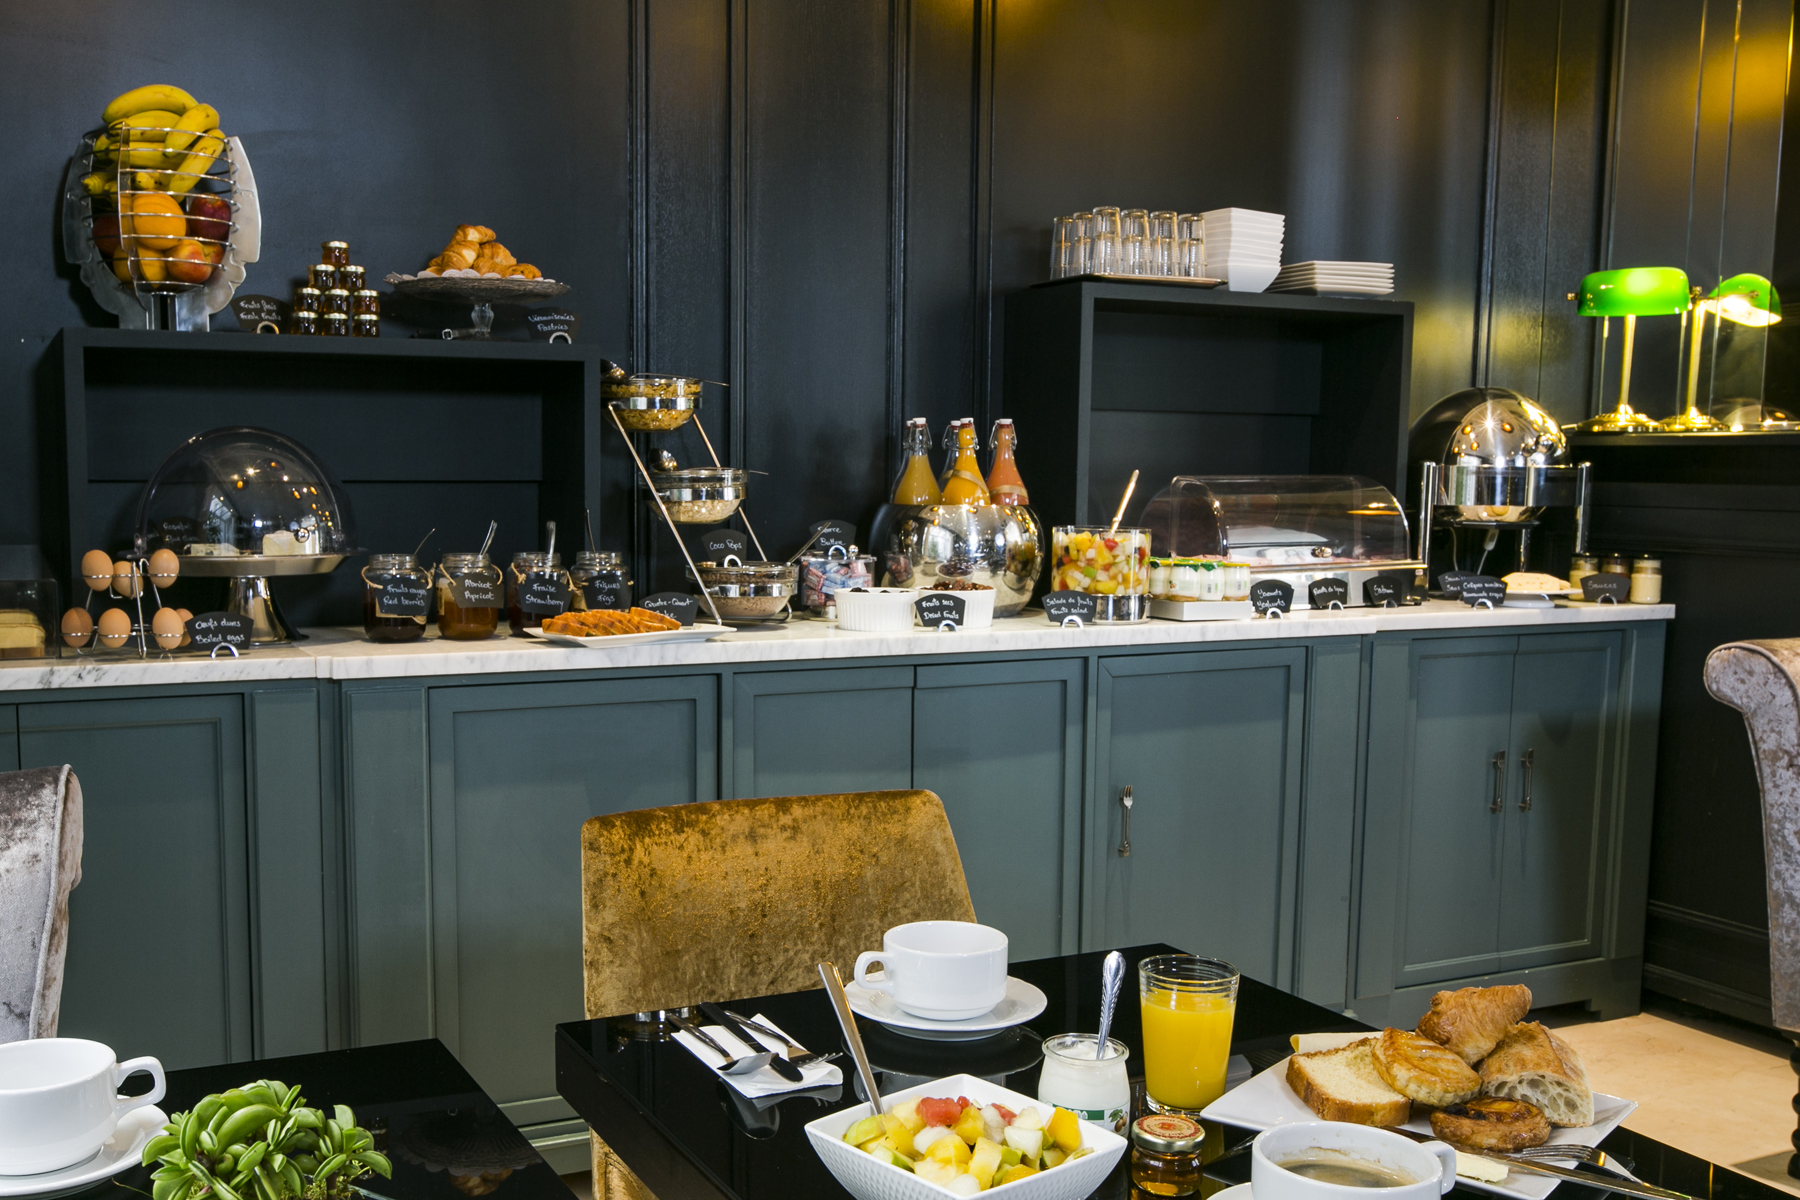 Best Western Plus de Neuville breakfast buffet